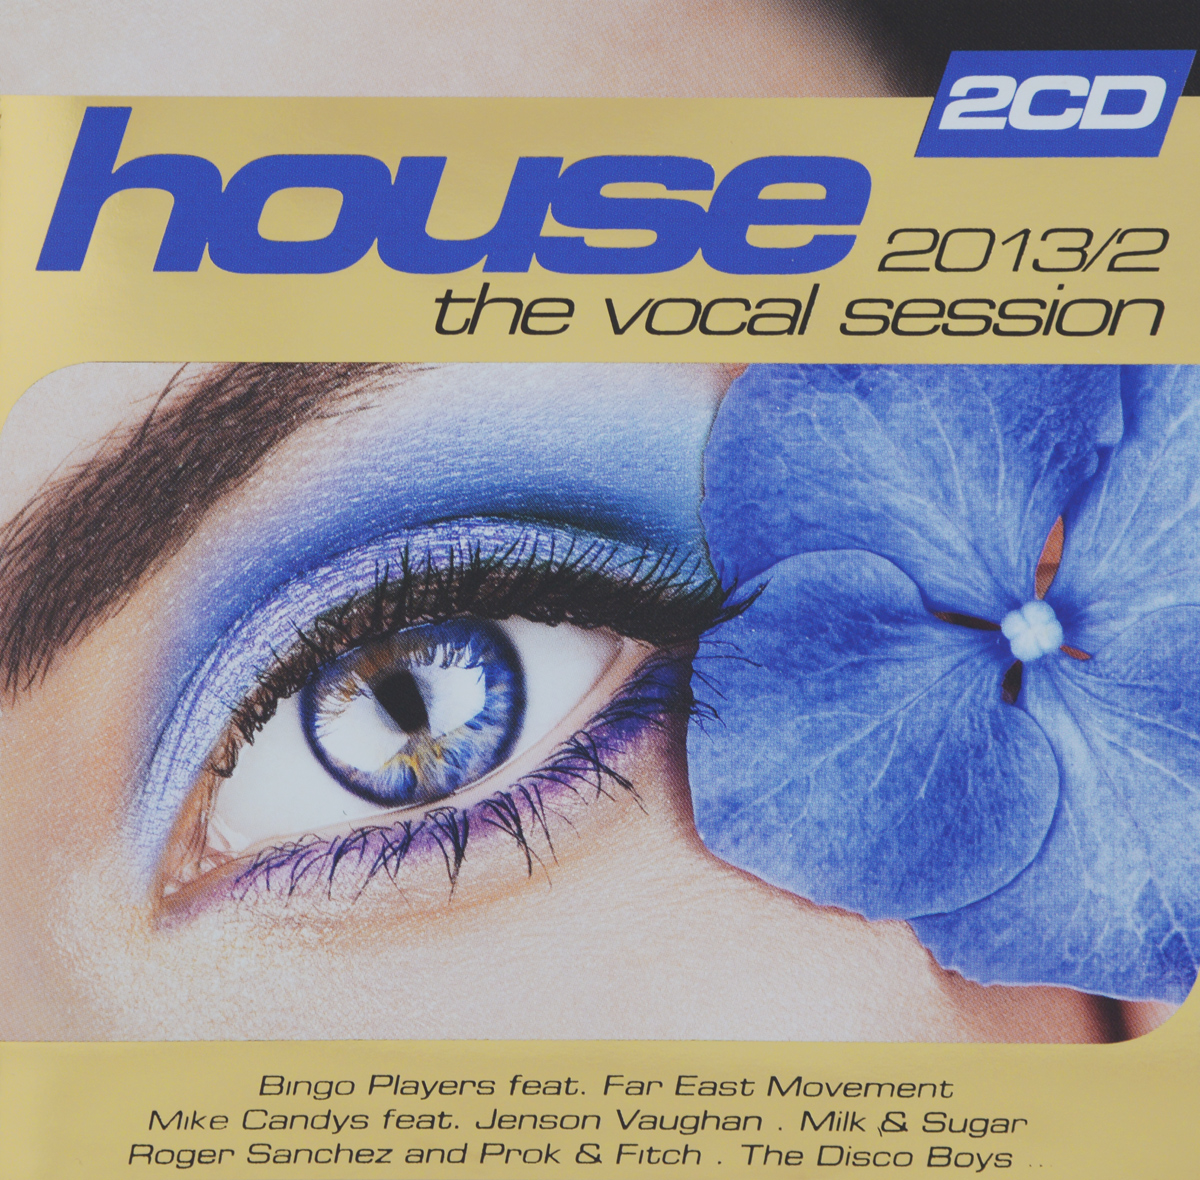 House. The Vocal Session 2013/2 (2 CD)